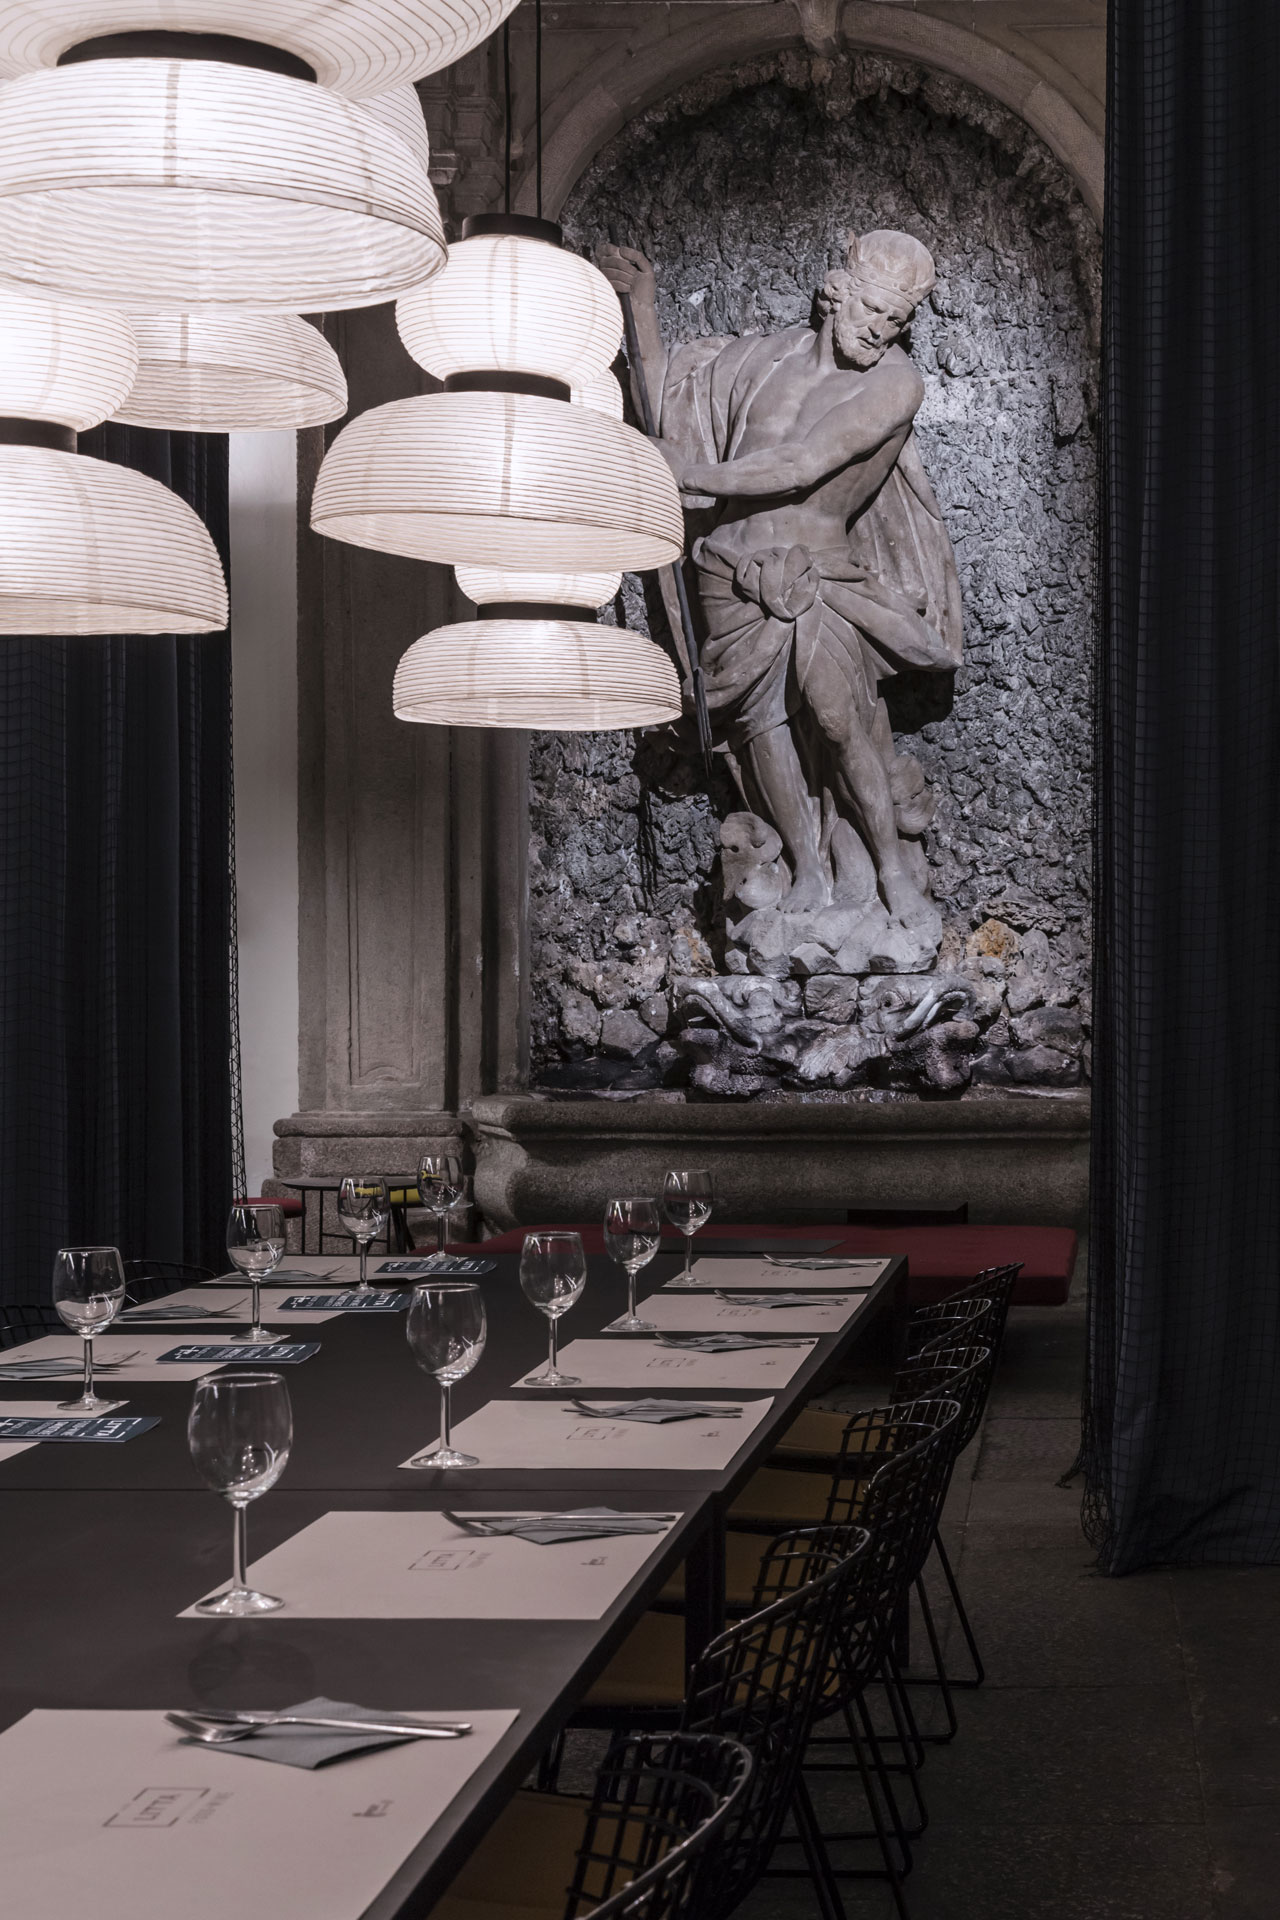 For the whole week the pop-up Bistrot Litta Ventiquattro designed by Elisa Ossino Studio was the ideal place for breakfast, lunch or drink inside Palazzo Litta, where the 'A Matter of Perception: LINKING MINDS' event organized by DAMN° magazine and Mosca Partners took place during MDW17. Photo © Ruy Teixeira.